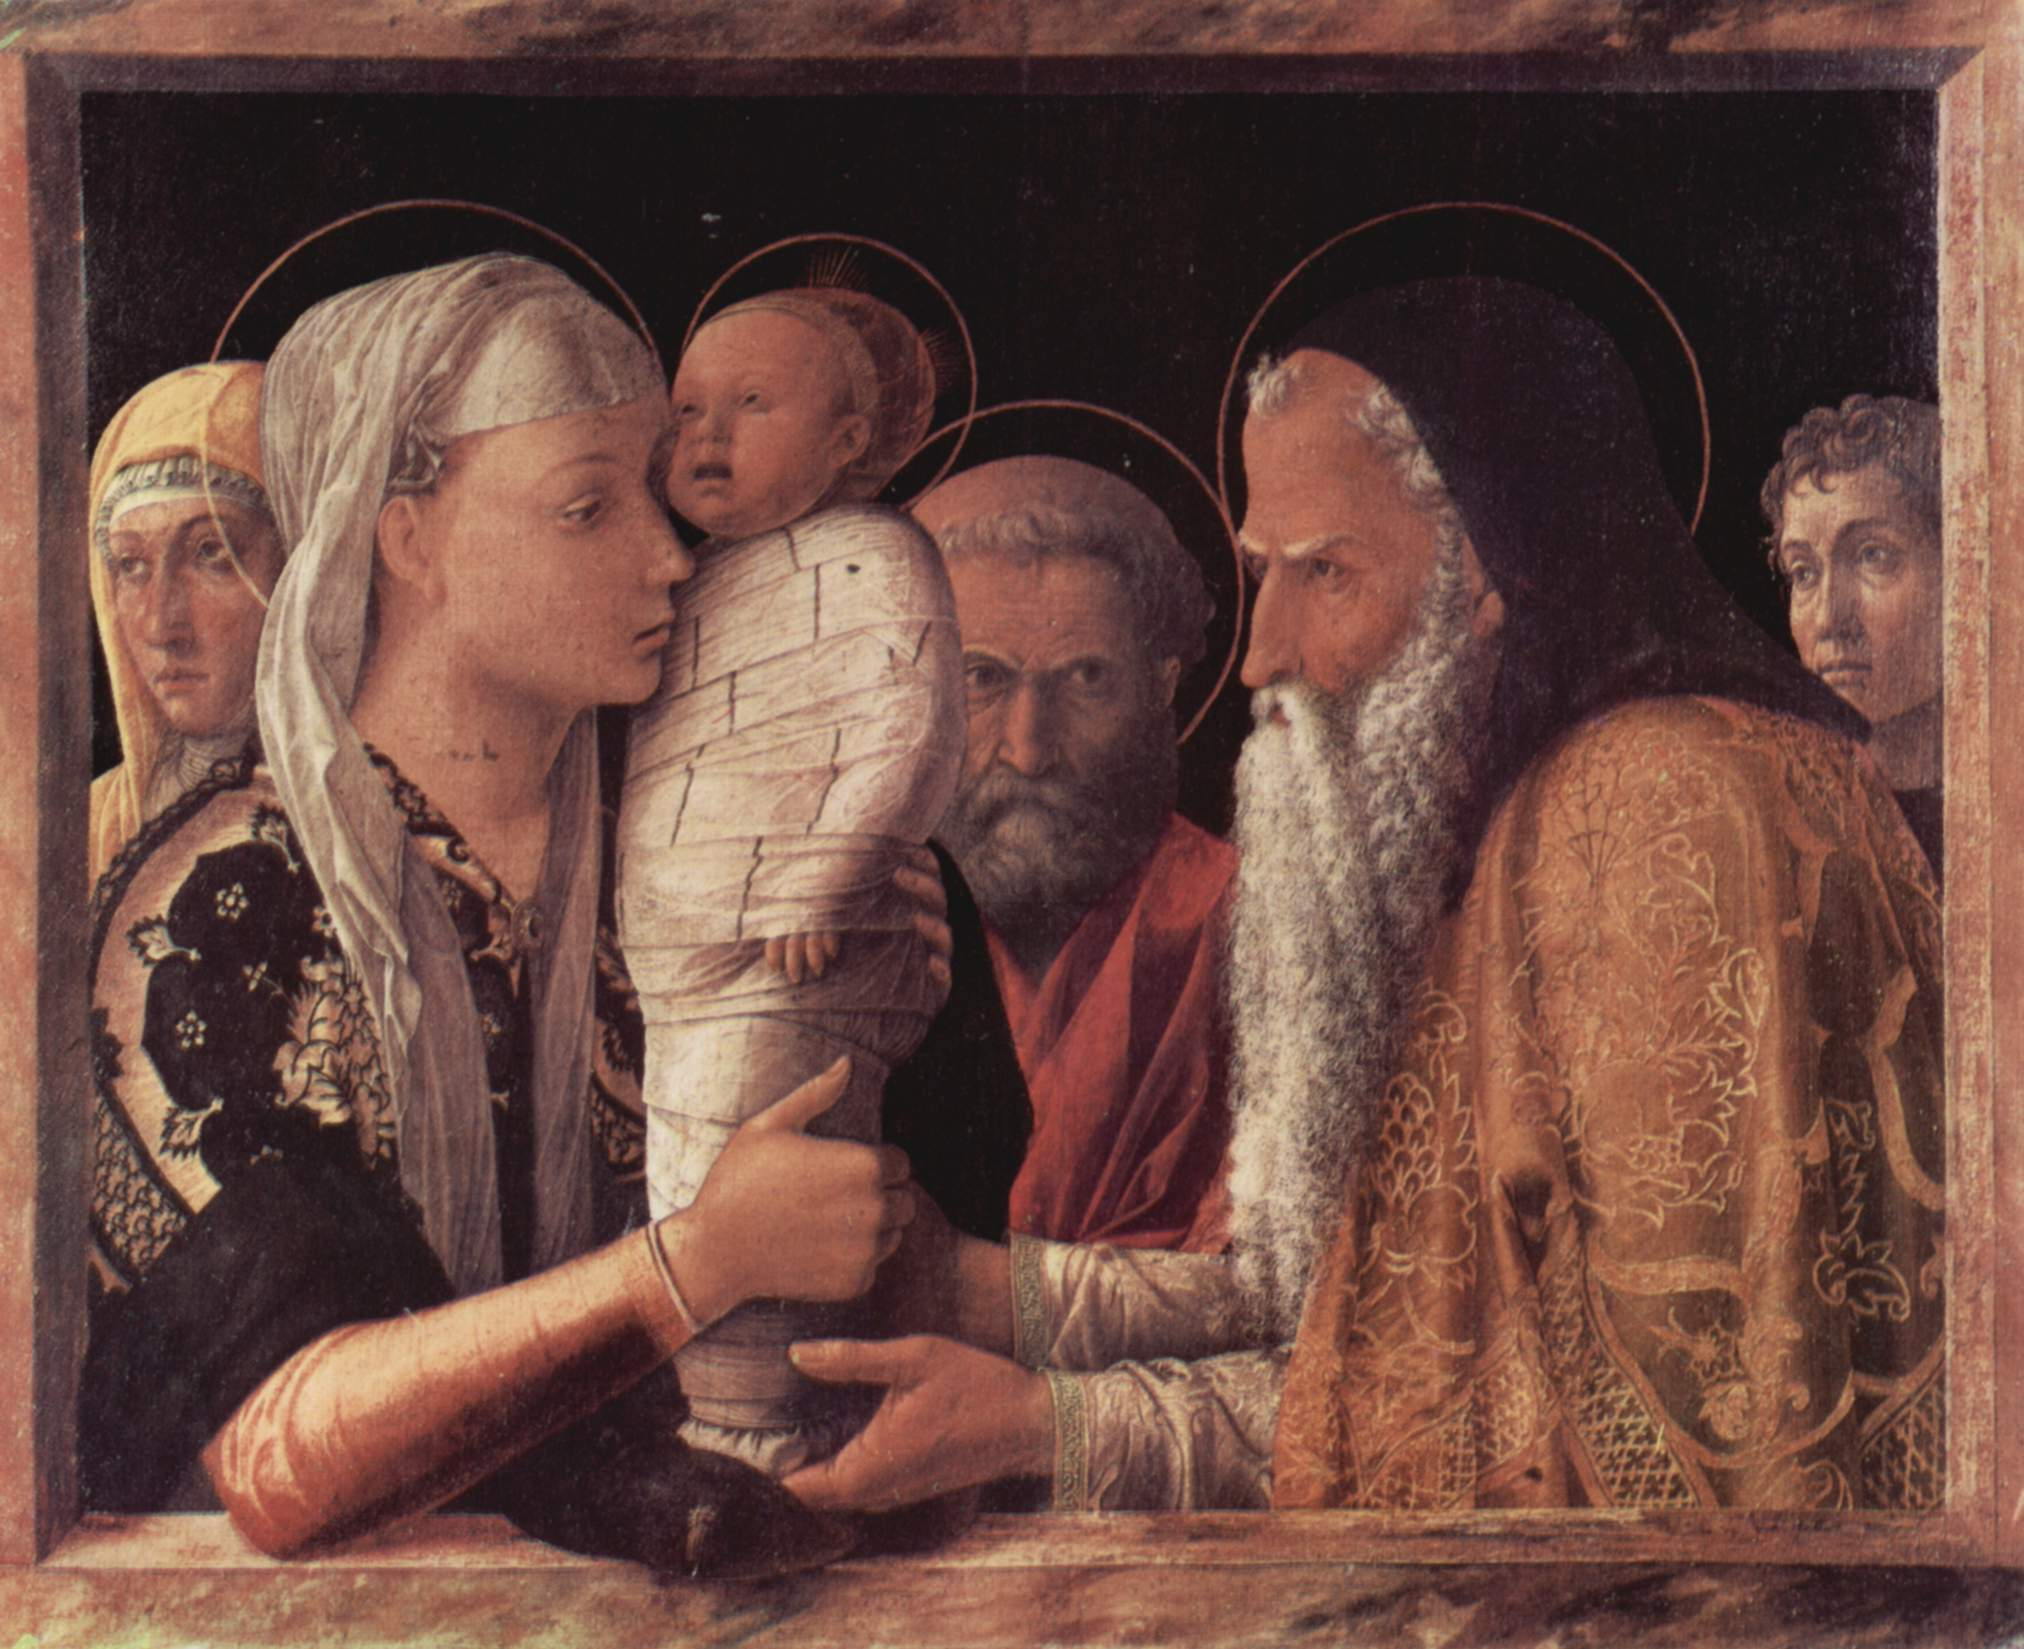 http://upload.wikimedia.org/wikipedia/commons/4/45/Andrea_Mantegna_049.jpg